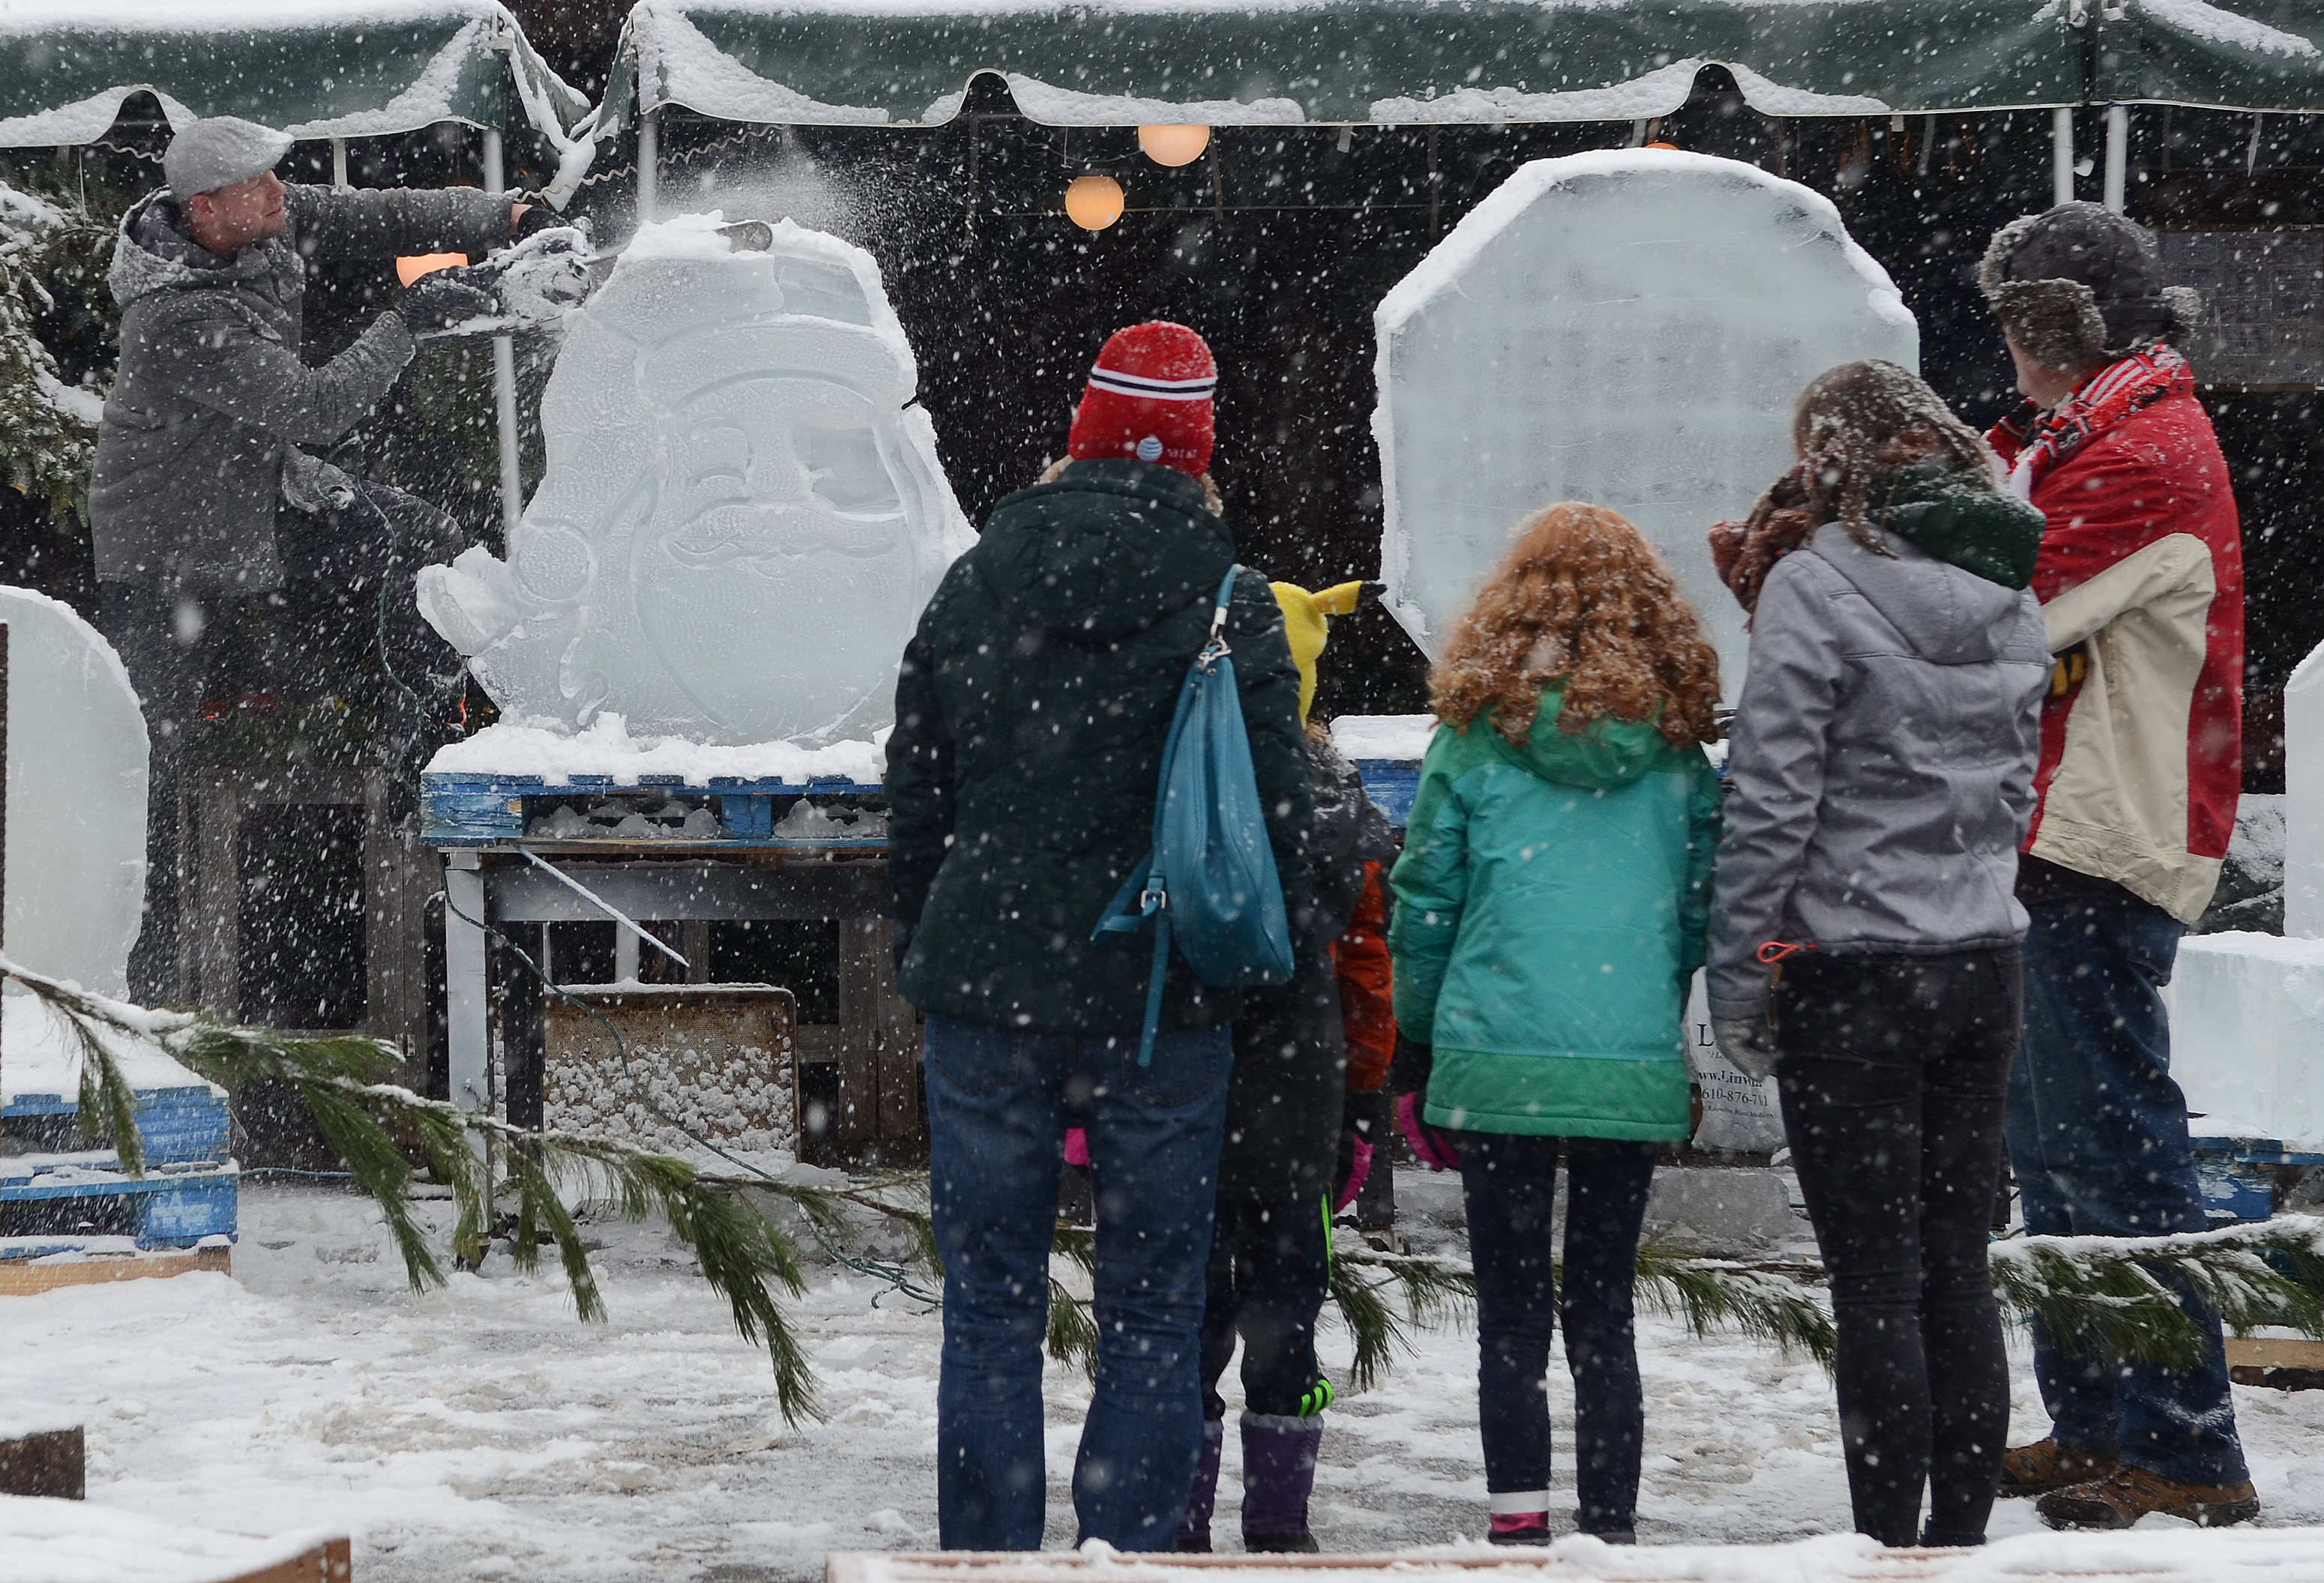 JOSE F. MORENO / Staff Photographer .Wynnewood residents, from left, Nuala Meyer, Lucy Meyer, Naeve Meyer, Lea Jung and Carl Meyer watch Don Lowing, perform his art of live ice carving, Saturday, December, 9, 2017, at the Linvilla Orchards, Media, PA. Lowing is one of only a handful of freehand ice sculptors in the area who still carve frozen art without the aid of computers. He does this on the side - his full-time job is at a local university.